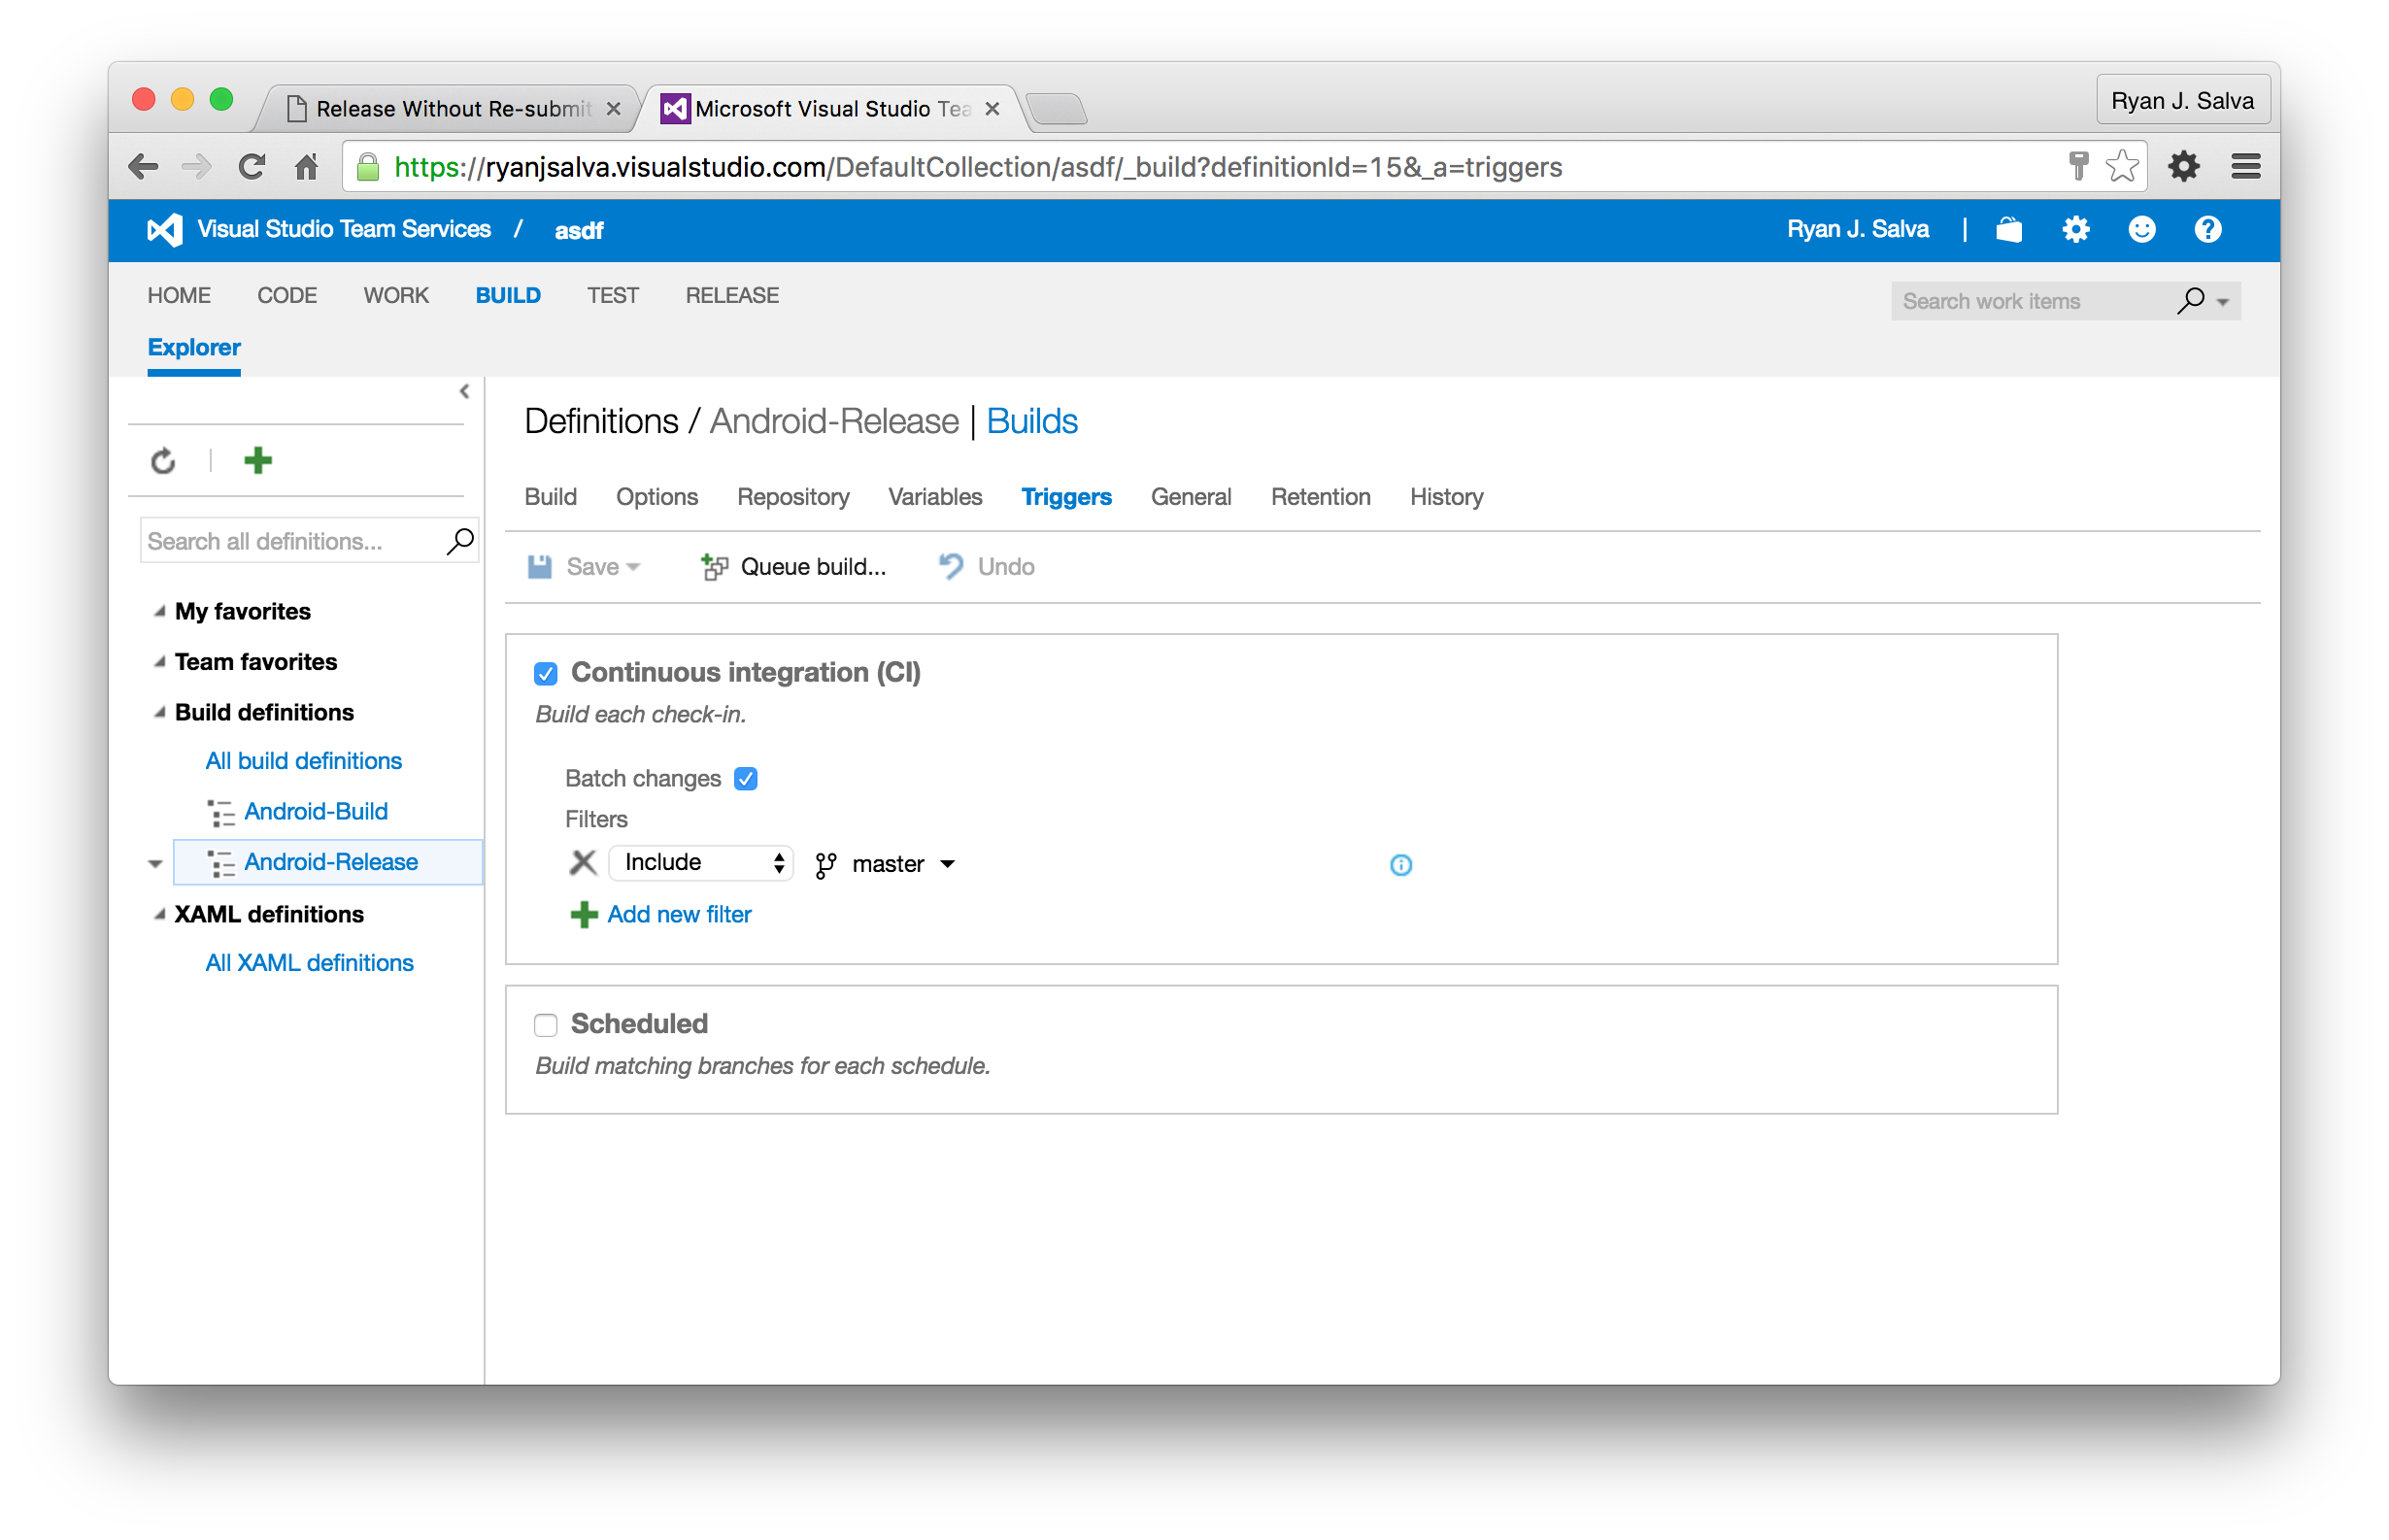 Triggers set to use Continuous Integration